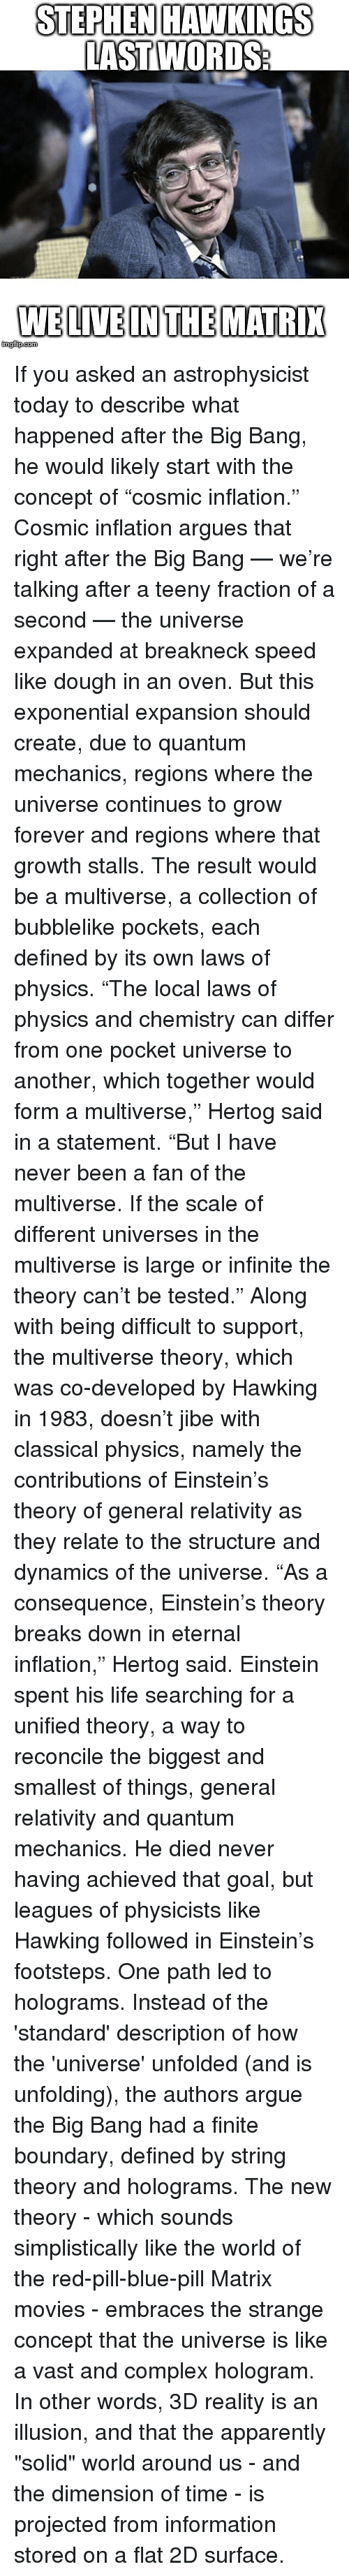 """Blue Pill: STEPHEN HAWKINGS  LAST WORDS  WELIVEINTHEMATRI If you asked an astrophysicist today to describe what happened after the Big Bang, he would likely start with the concept of """"cosmic inflation."""" Cosmic inflation argues that right after the Big Bang — we're talking after a teeny fraction of a second — the universe expanded at breakneck speed like dough in an oven. But this exponential expansion should create, due to quantum mechanics, regions where the universe continues to grow forever and regions where that growth stalls. The result would be a multiverse, a collection of bubblelike pockets, each defined by its own laws of physics. """"The local laws of physics and chemistry can differ from one pocket universe to another, which together would form a multiverse,"""" Hertog said in a statement. """"But I have never been a fan of the multiverse. If the scale of different universes in the multiverse is large or infinite the theory can't be tested."""" Along with being difficult to support, the multiverse theory, which was co-developed by Hawking in 1983, doesn't jibe with classical physics, namely the contributions of Einstein's theory of general relativity as they relate to the structure and dynamics of the universe. """"As a consequence, Einstein's theory breaks down in eternal inflation,"""" Hertog said. Einstein spent his life searching for a unified theory, a way to reconcile the biggest and smallest of things, general relativity and quantum mechanics. He died never having achieved that goal, but leagues of physicists like Hawking followed in Einstein's footsteps. One path led to holograms. Instead of the 'standard' description of how the 'universe' unfolded (and is unfolding), the authors argue the Big Bang had a finite boundary, defined by string theory and holograms. The new theory - which sounds simplistically like the world of the red-pill-blue-pill Matrix movies - embraces the strange concept that the universe is like a vast and complex hologram. In other words, 3D rea"""